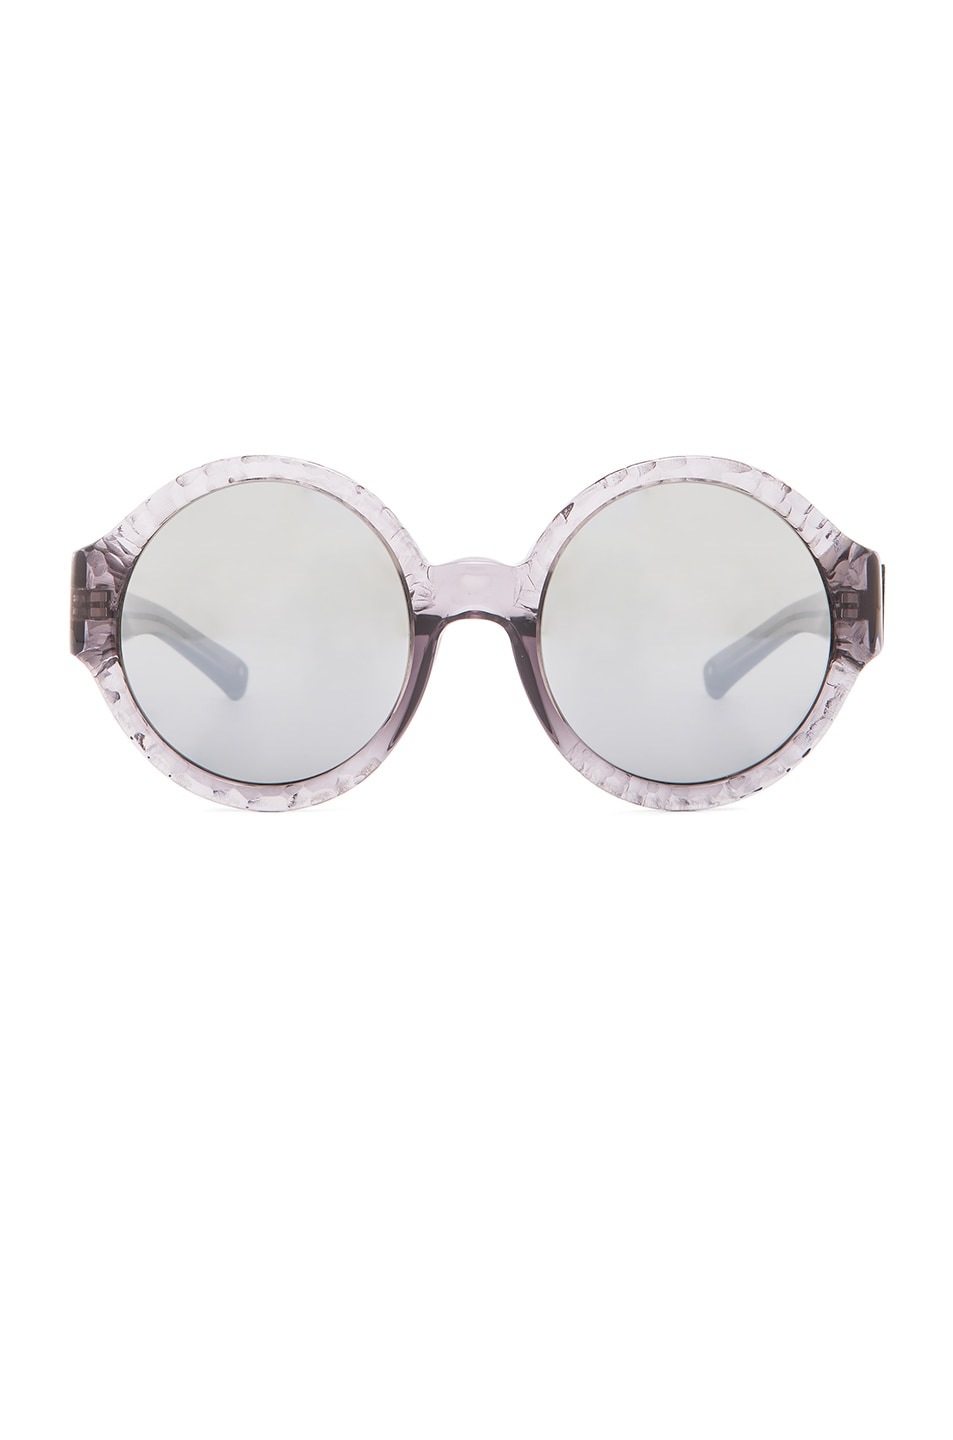 Image 1 of 3.1 phillip lim Carved Circle Sunglasses in Grey